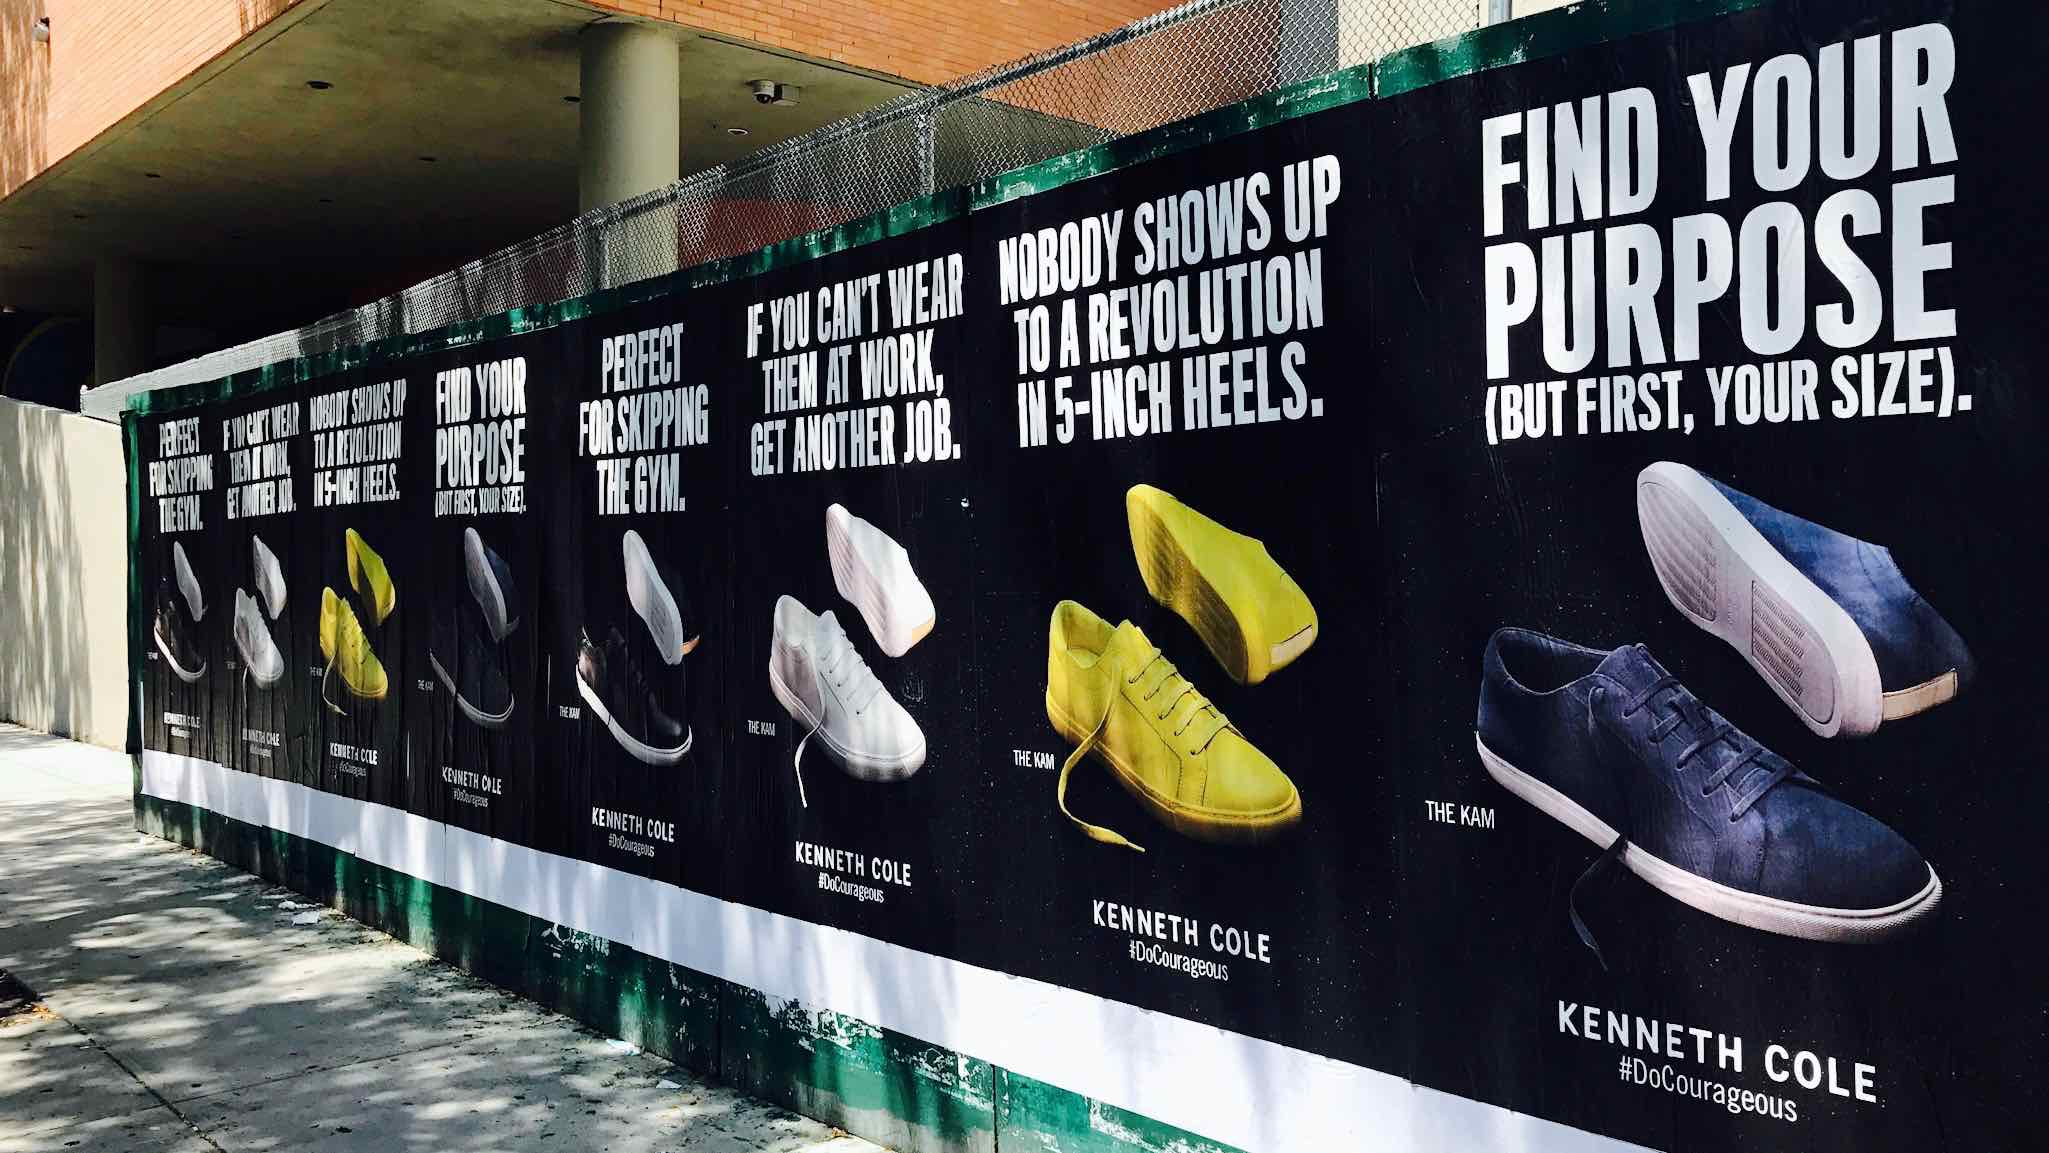 OMG | Guerilla Marketing | Wild Posting | Kenneth Cole | Find your purpose | New York